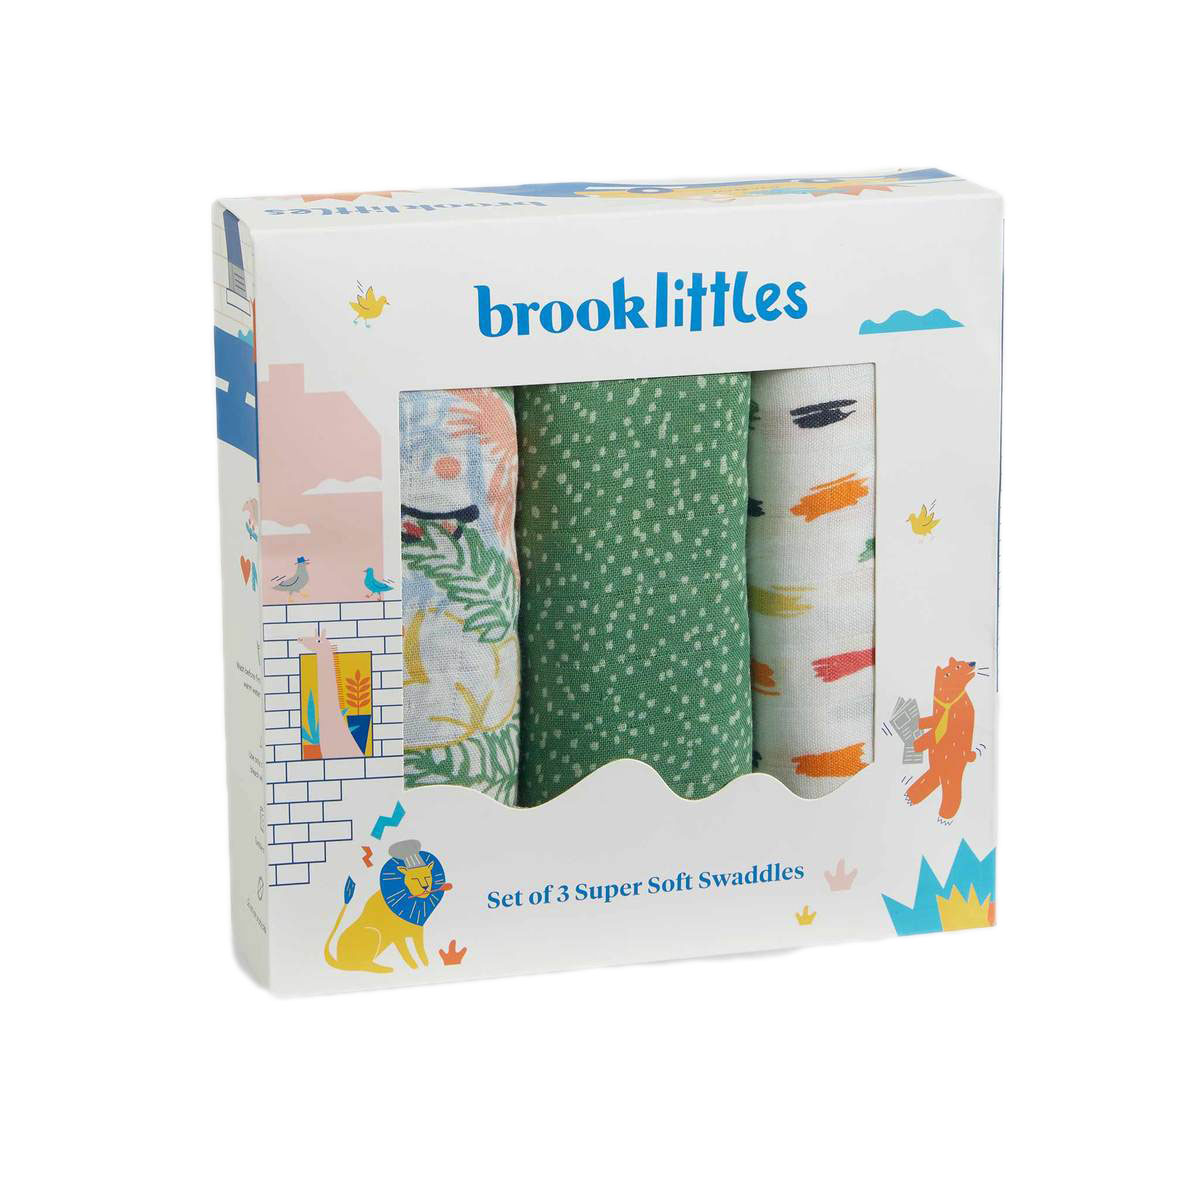 6 Clever Items 9/25/20 - Brooklittles Baby Swaddle Set